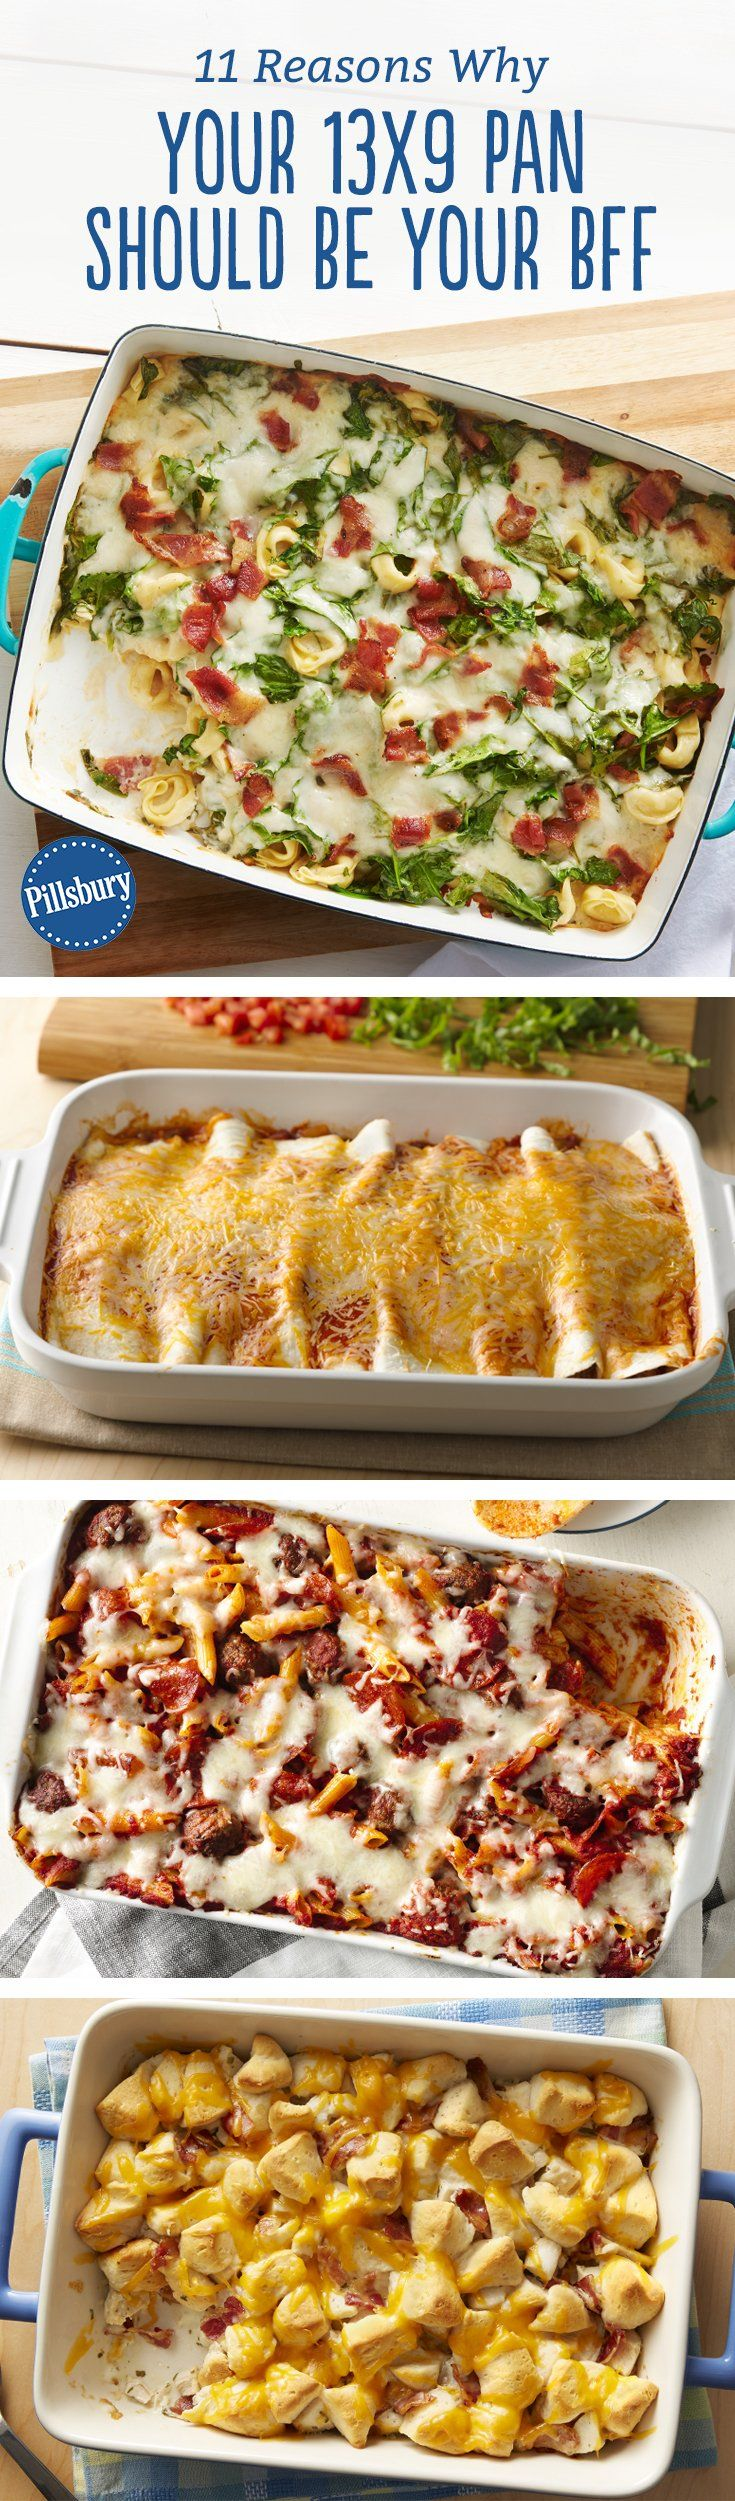 Is there anything your 13x9 can't do? These ridiculously easy dinners say no. From a tortellini casserole based on one of our favorite dips to creamy enchiladas that are the perfect twist on taco night, these are all made in a 13x9 for easy prep and a family-sized meals.